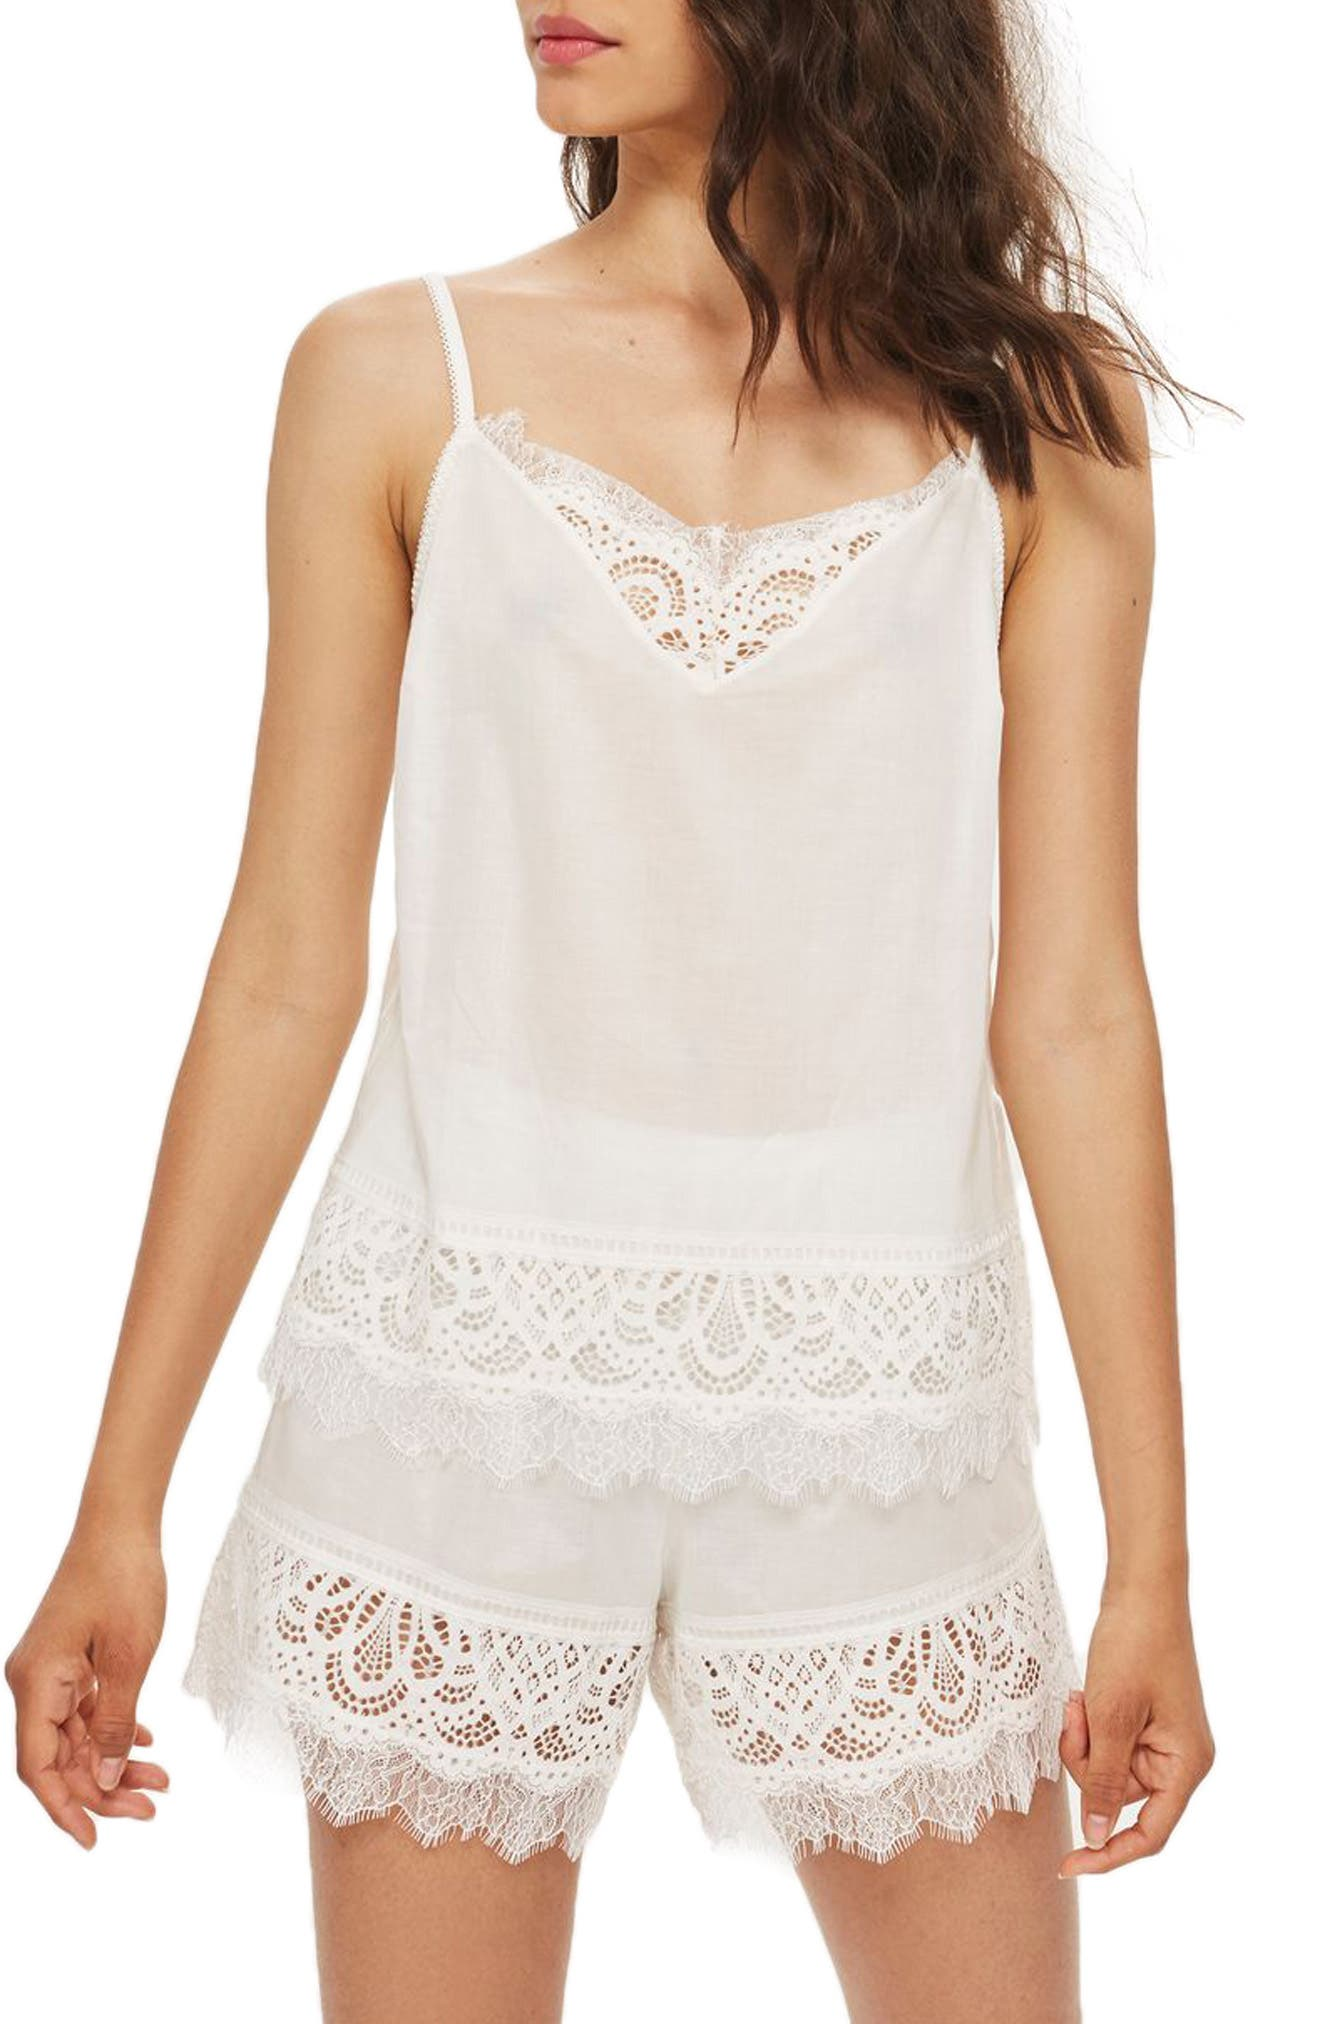 Lydia Lace Camisole by Topshop